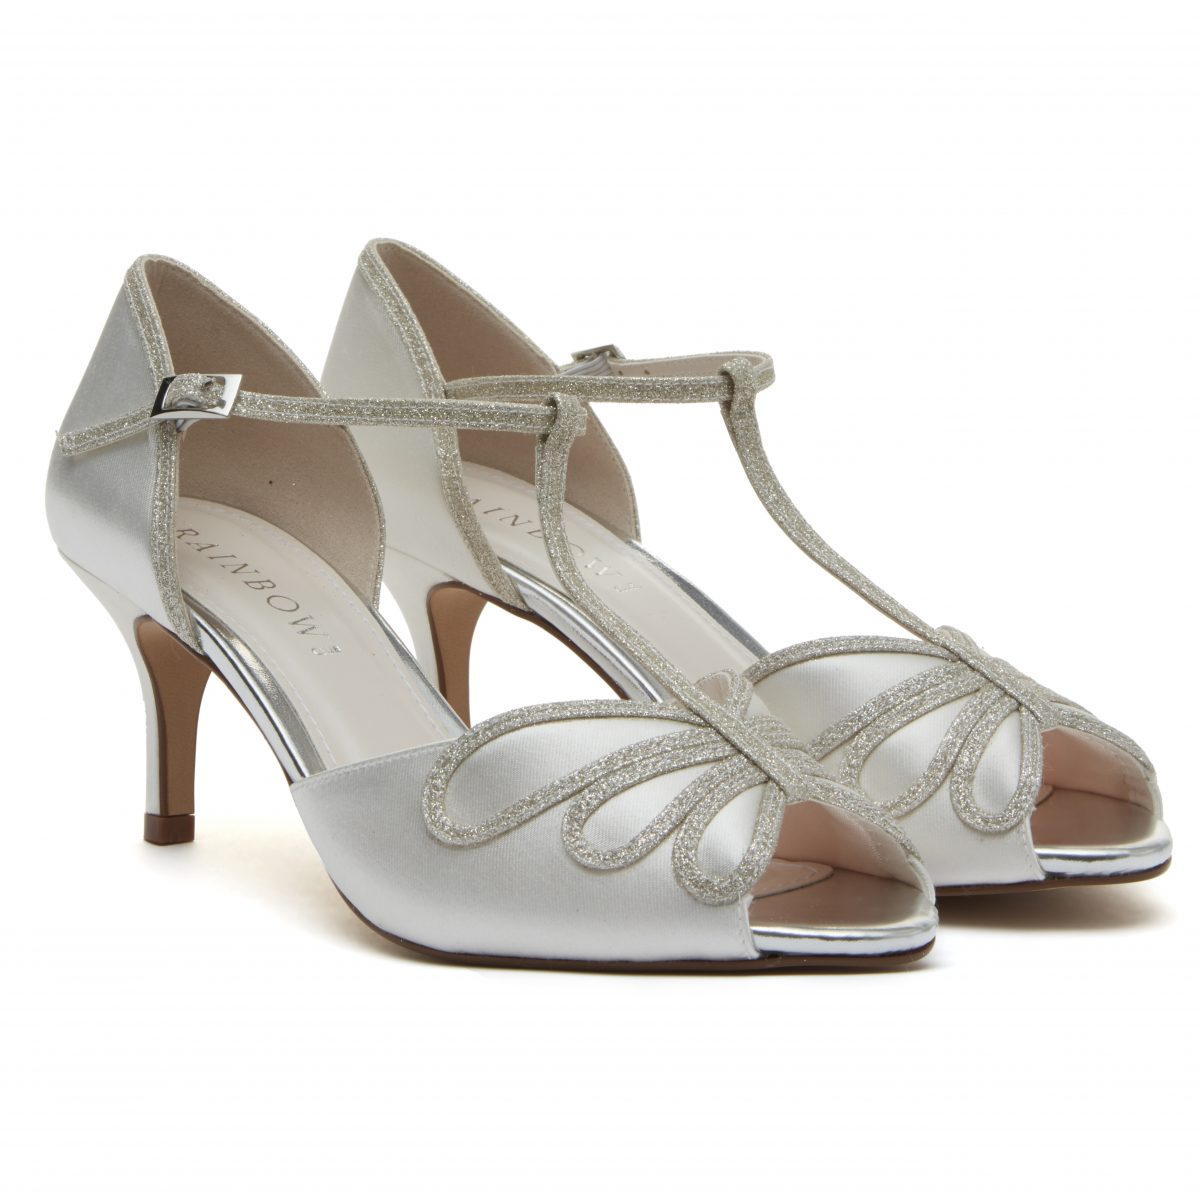 Rainbow Club Harlow - Peep Toe Satin/ Silver Shimmer Shoe 1